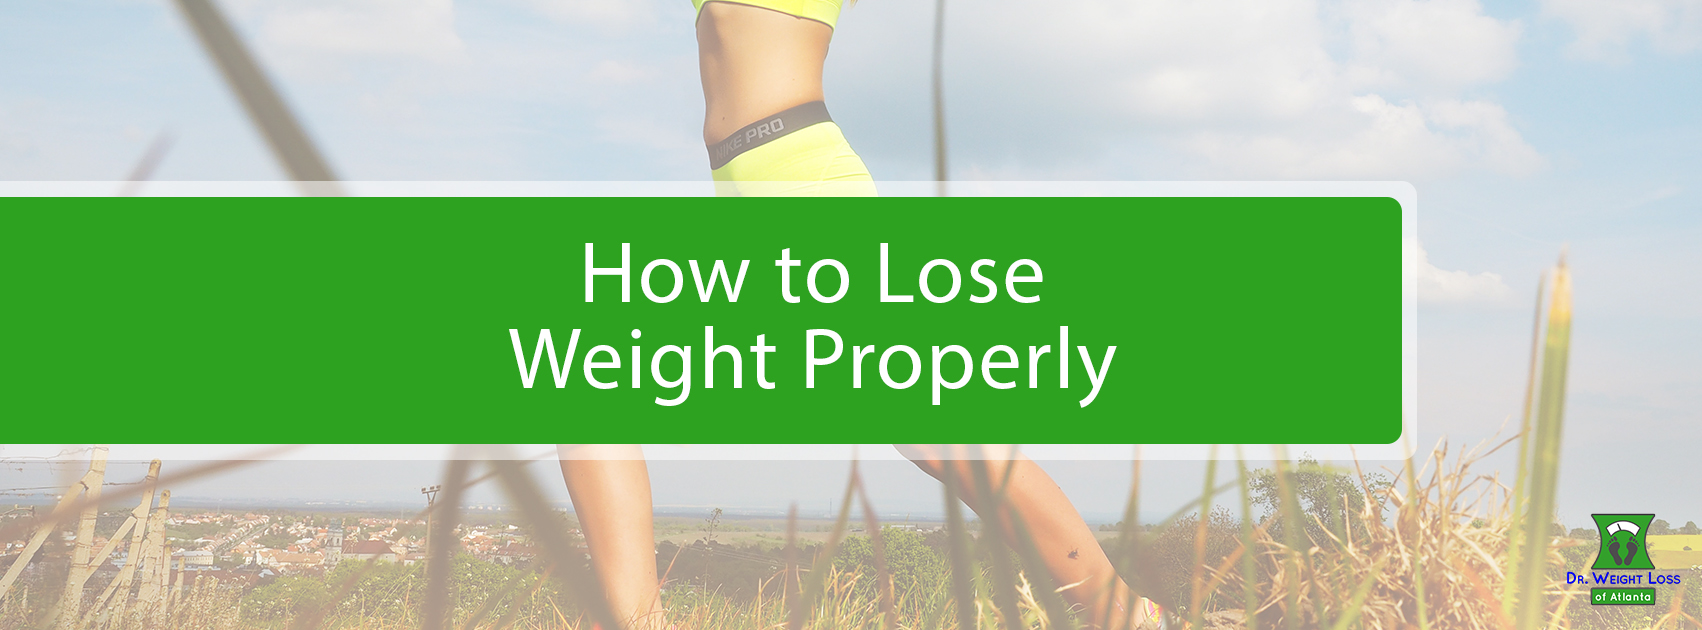 How To Properly Lose Weight